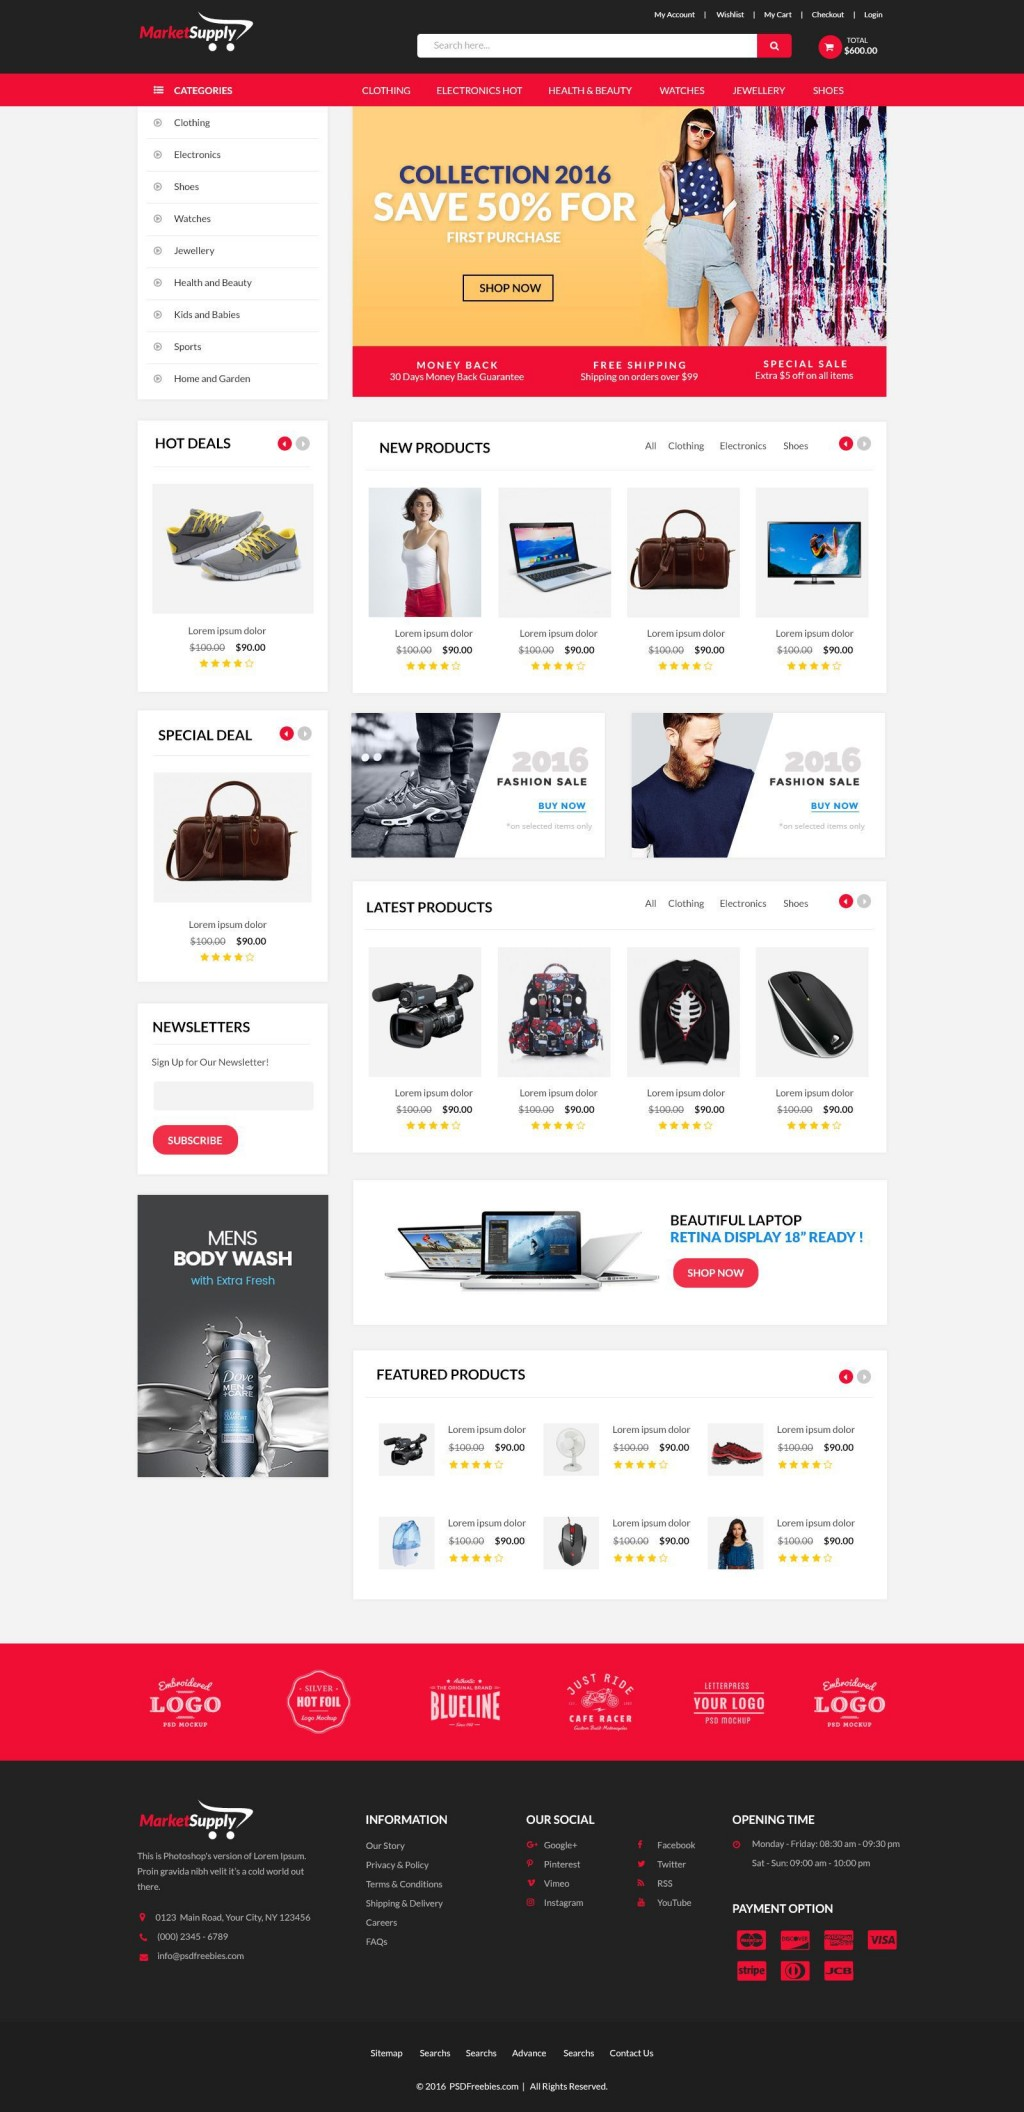 000 Shocking Free Php Website Template Idea  Download And Cs Full ThemeLarge